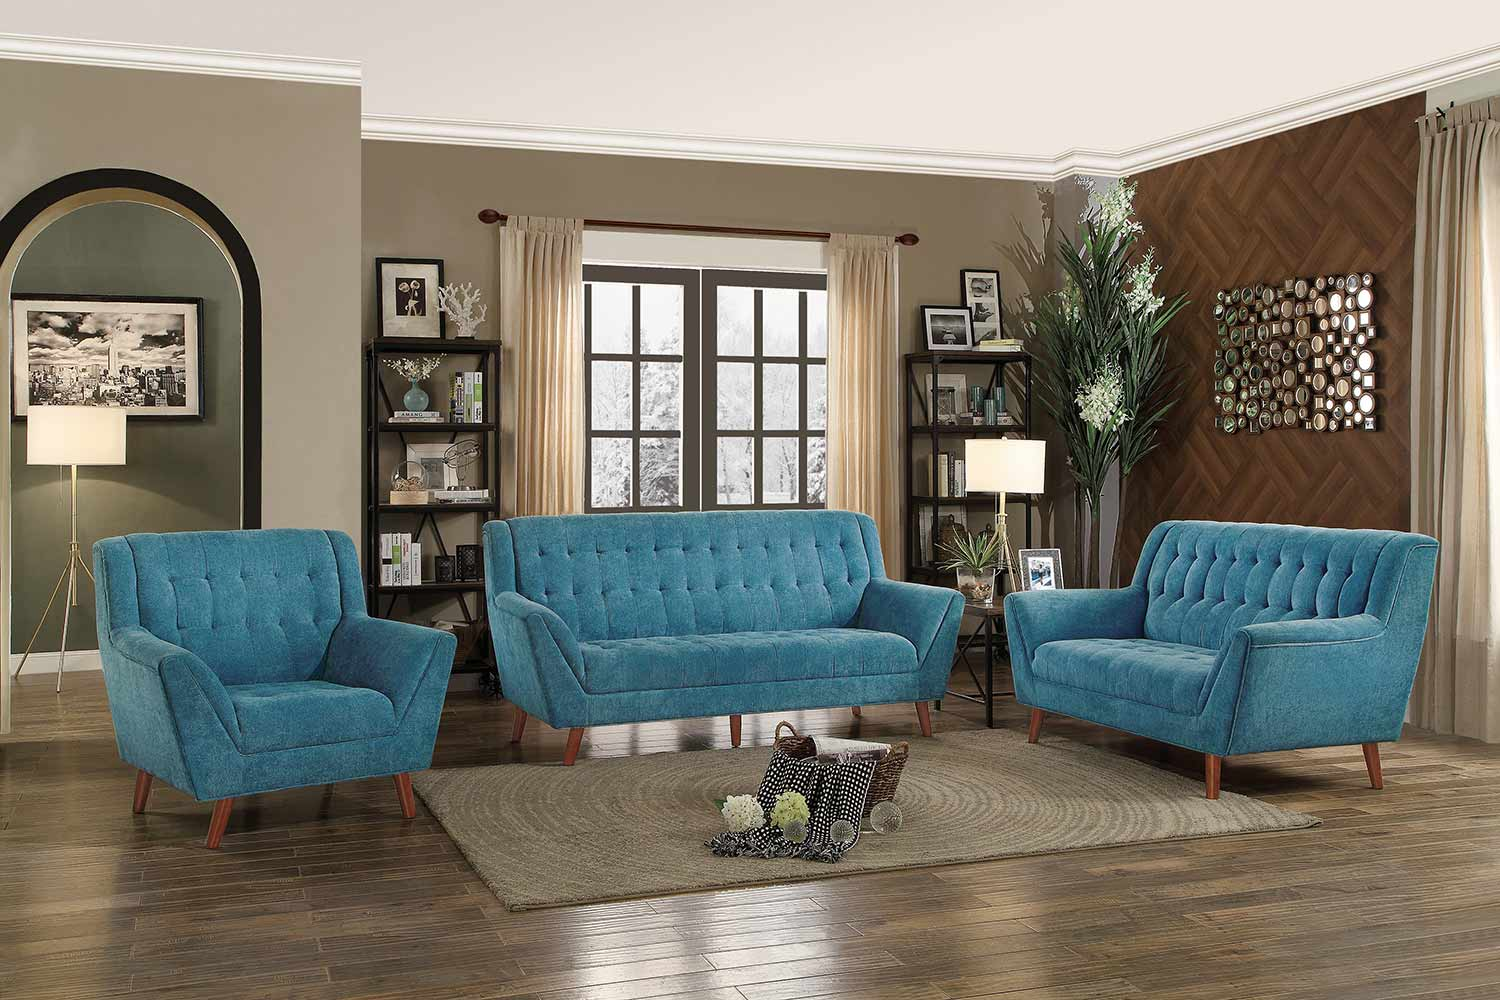 Picture of: Homelegance Erath 2pc Blue Sofa Love Seat Set Dallas Tx Living Room Set Furniture Nation